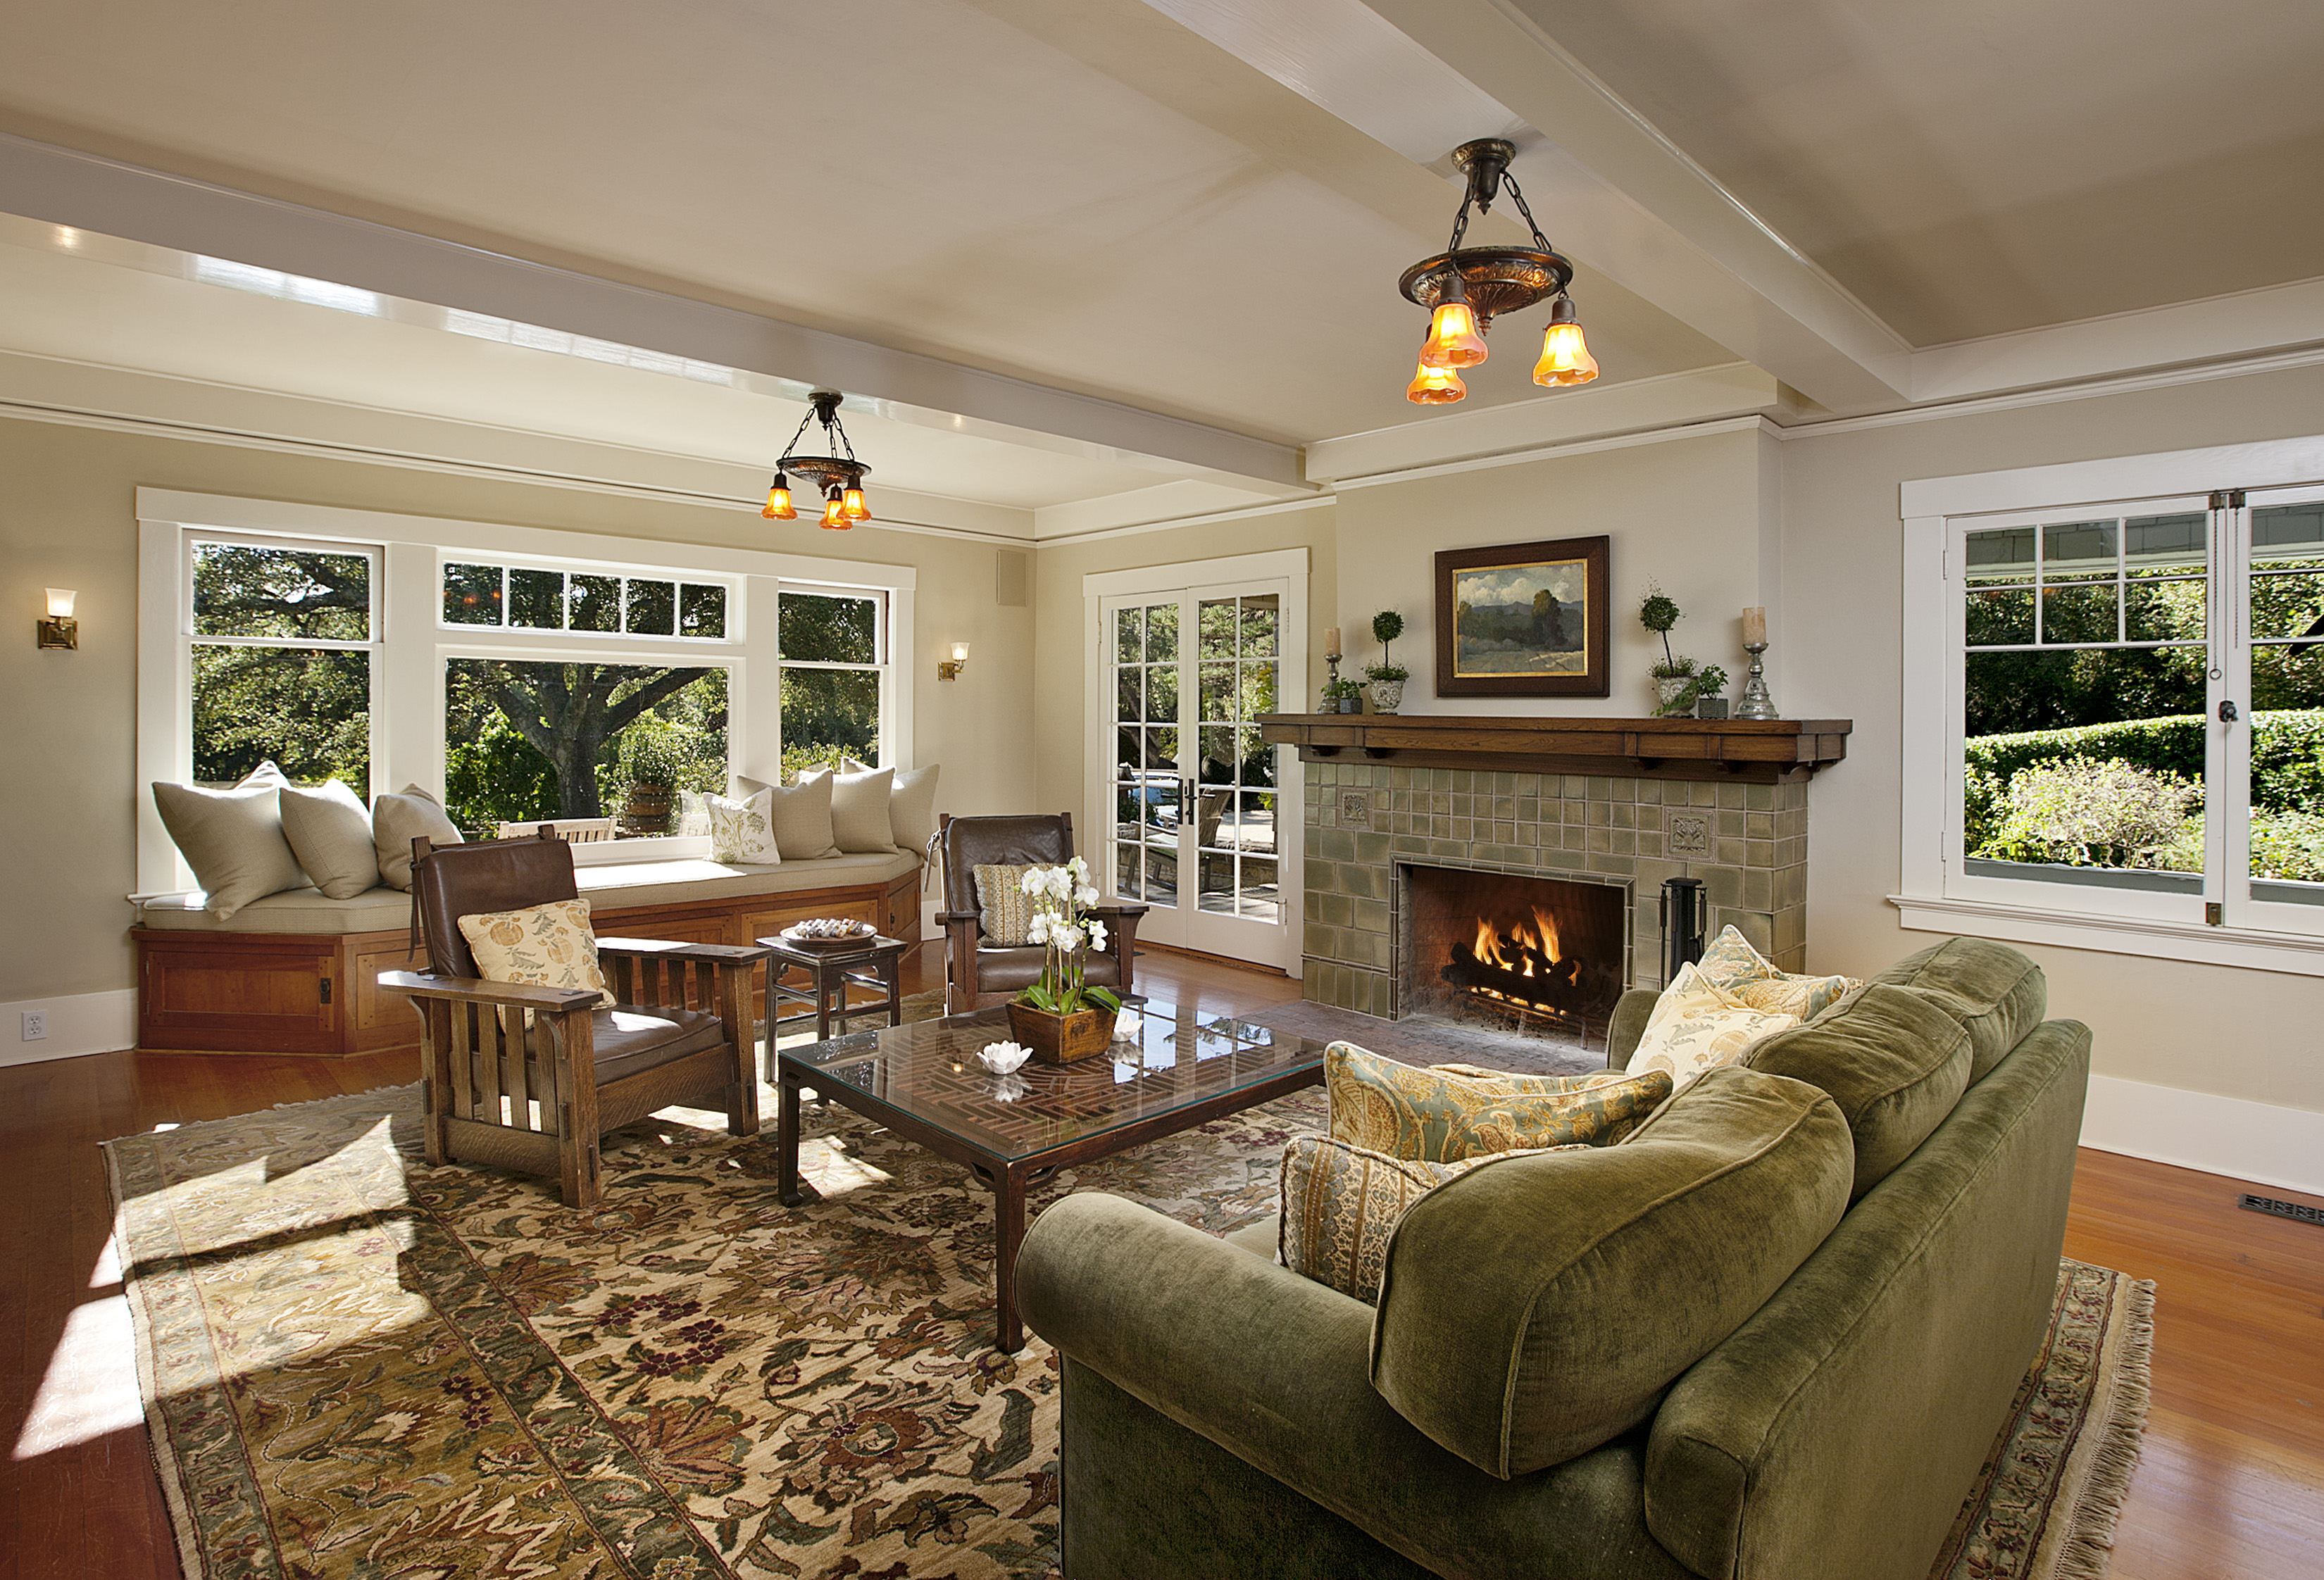 Popular home styles for 2012 montecito real estate Inside house living room